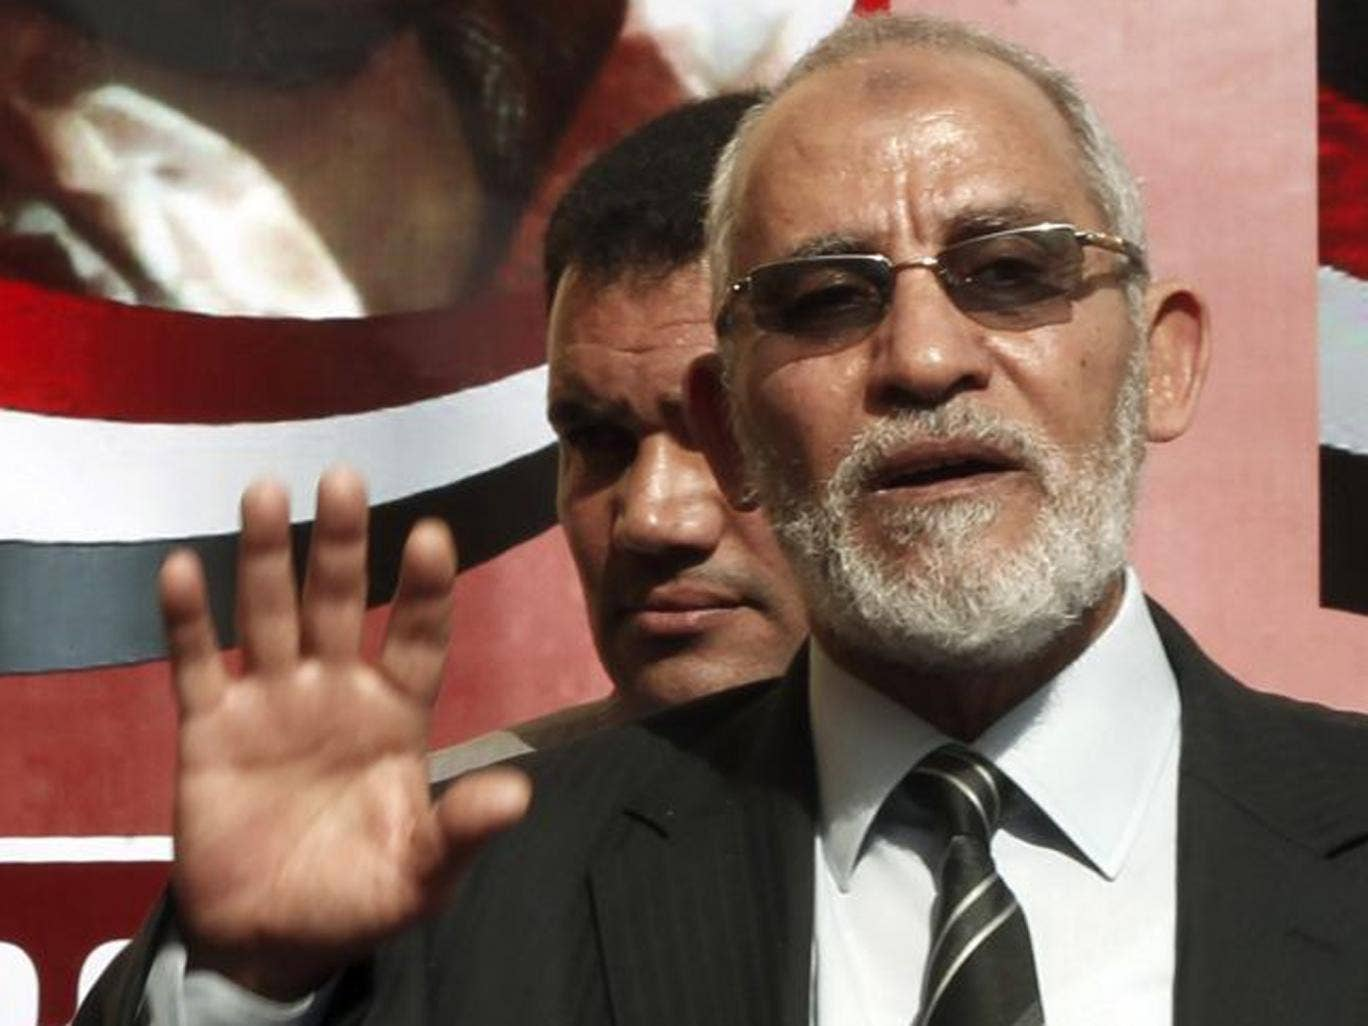 Security officials said Mohamed Badie was captured in a flat in the eastern Cairo district of Nasr City